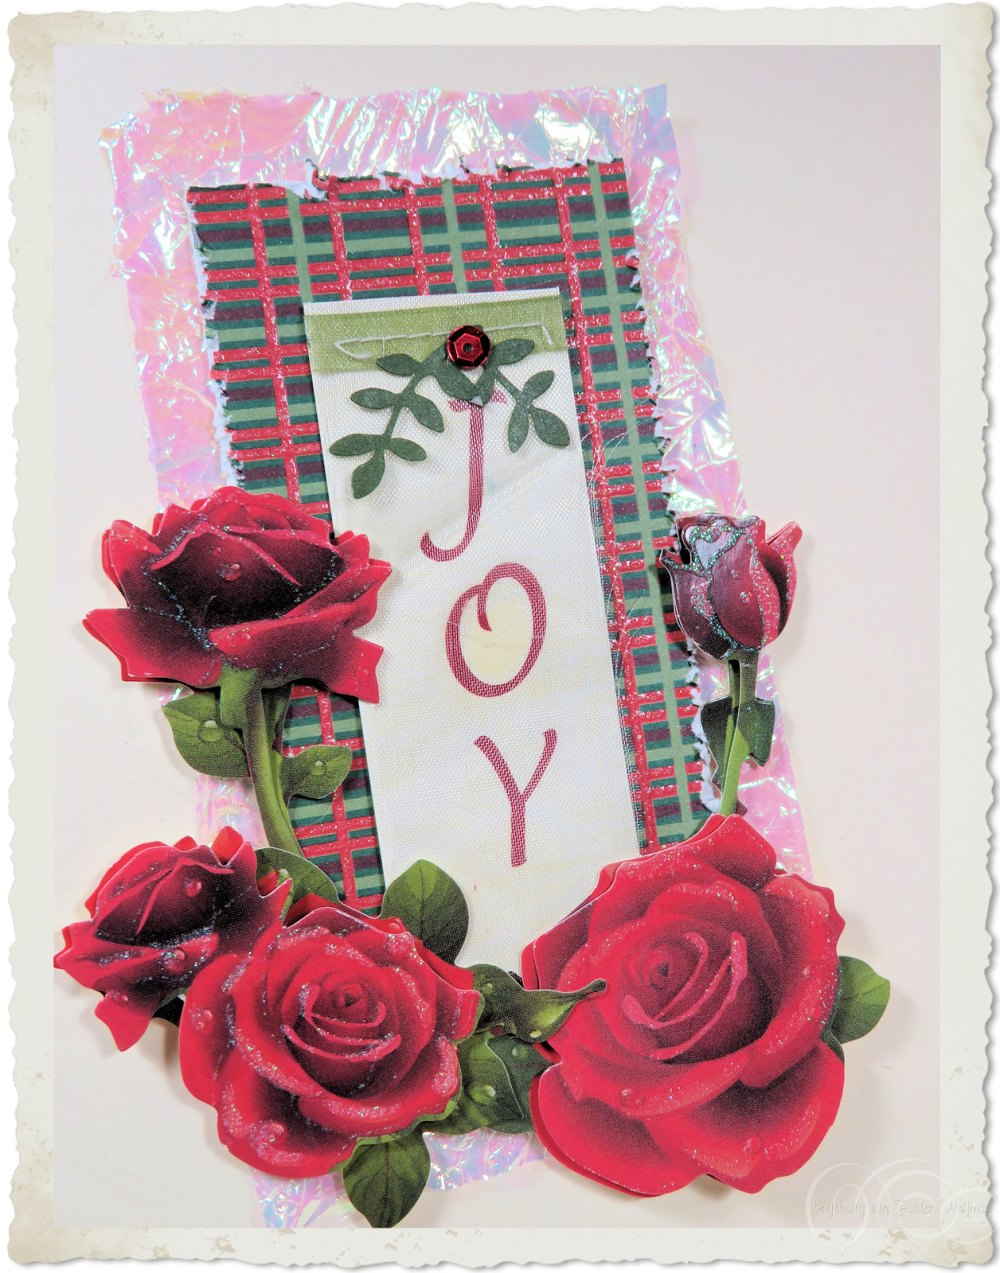 Inside a Christmas card details of wordart 'Joy'